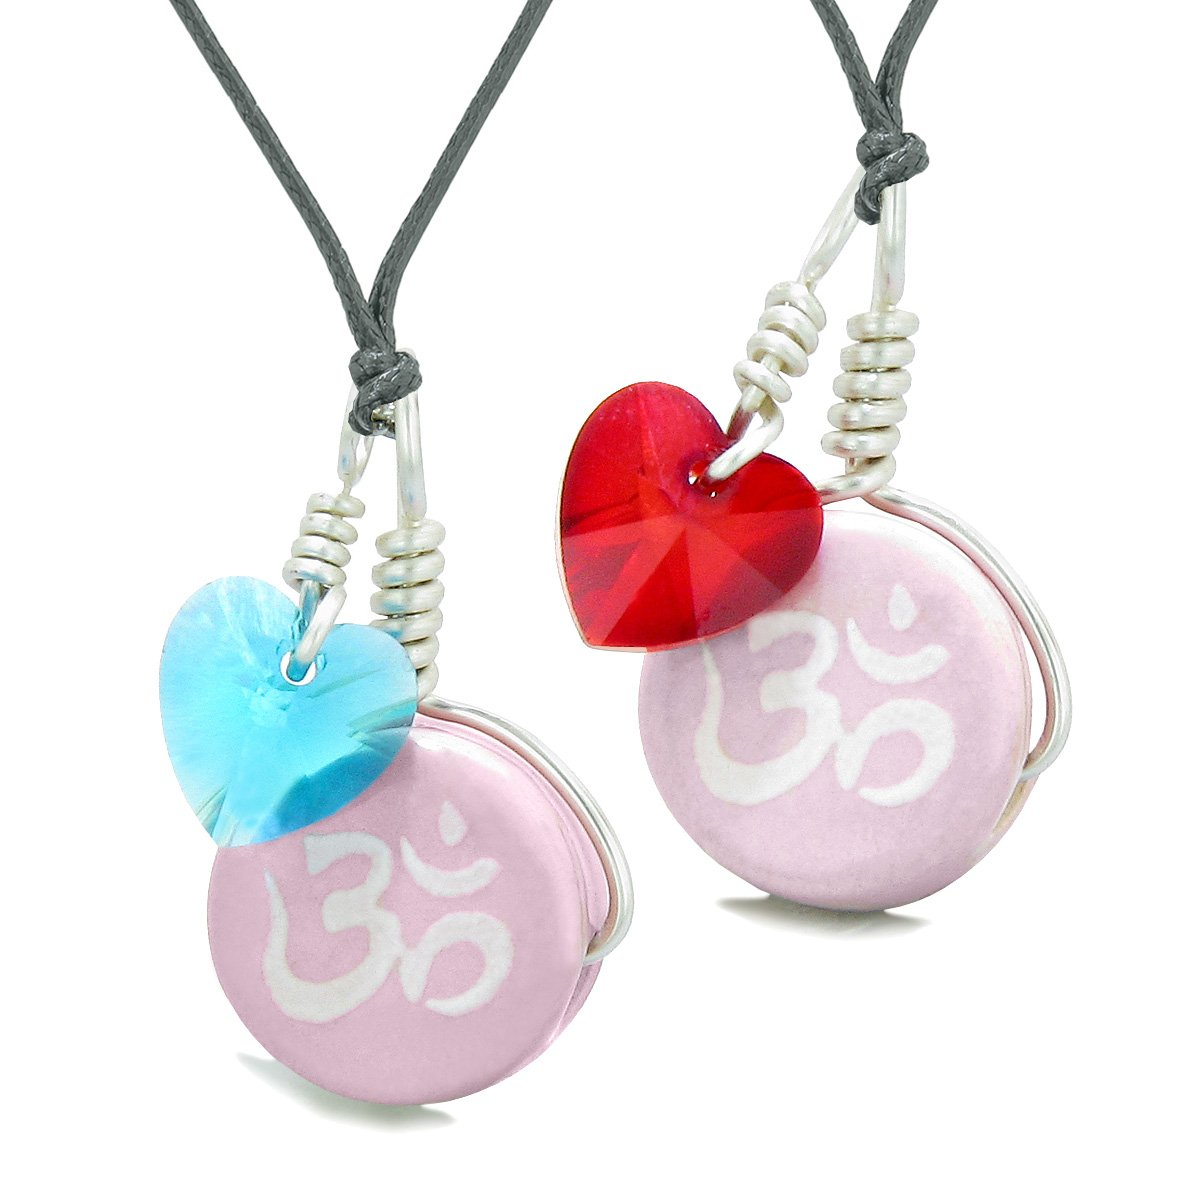 Love Couples or BFF Set Cute Ceramic Tibetan Pink OM Charms Blue Red Hearts Amulet Adjustable Necklaces